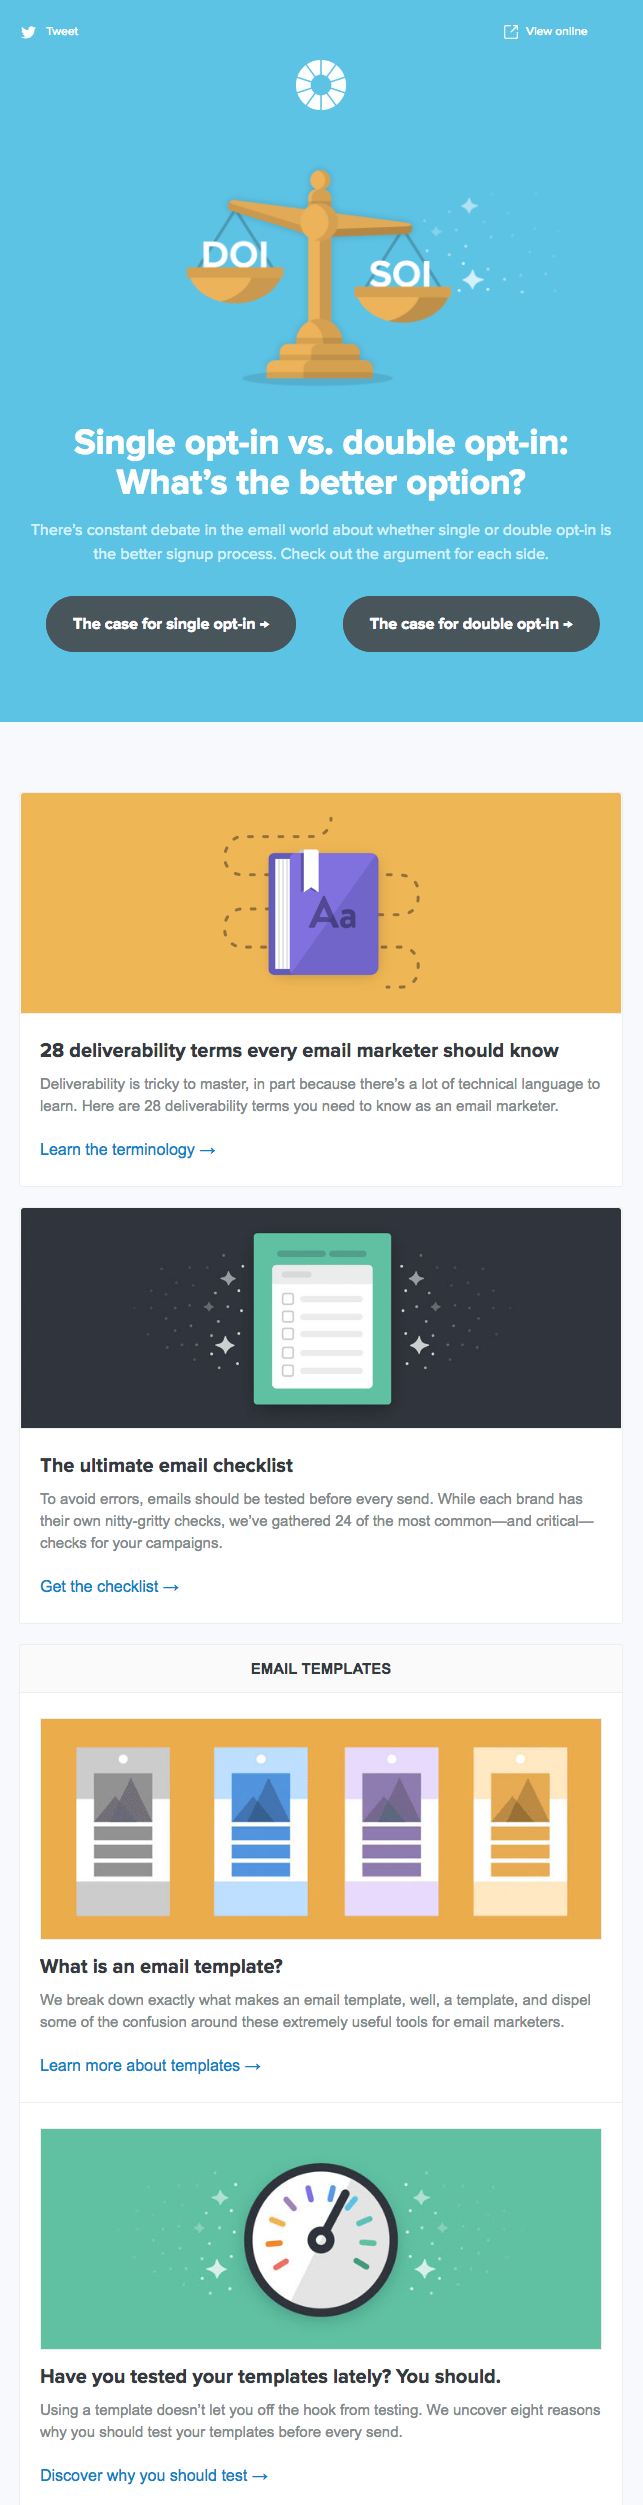 15 Email Newsletter Examples We Love Getting in Our Inboxes – Example of Newsletter Templates